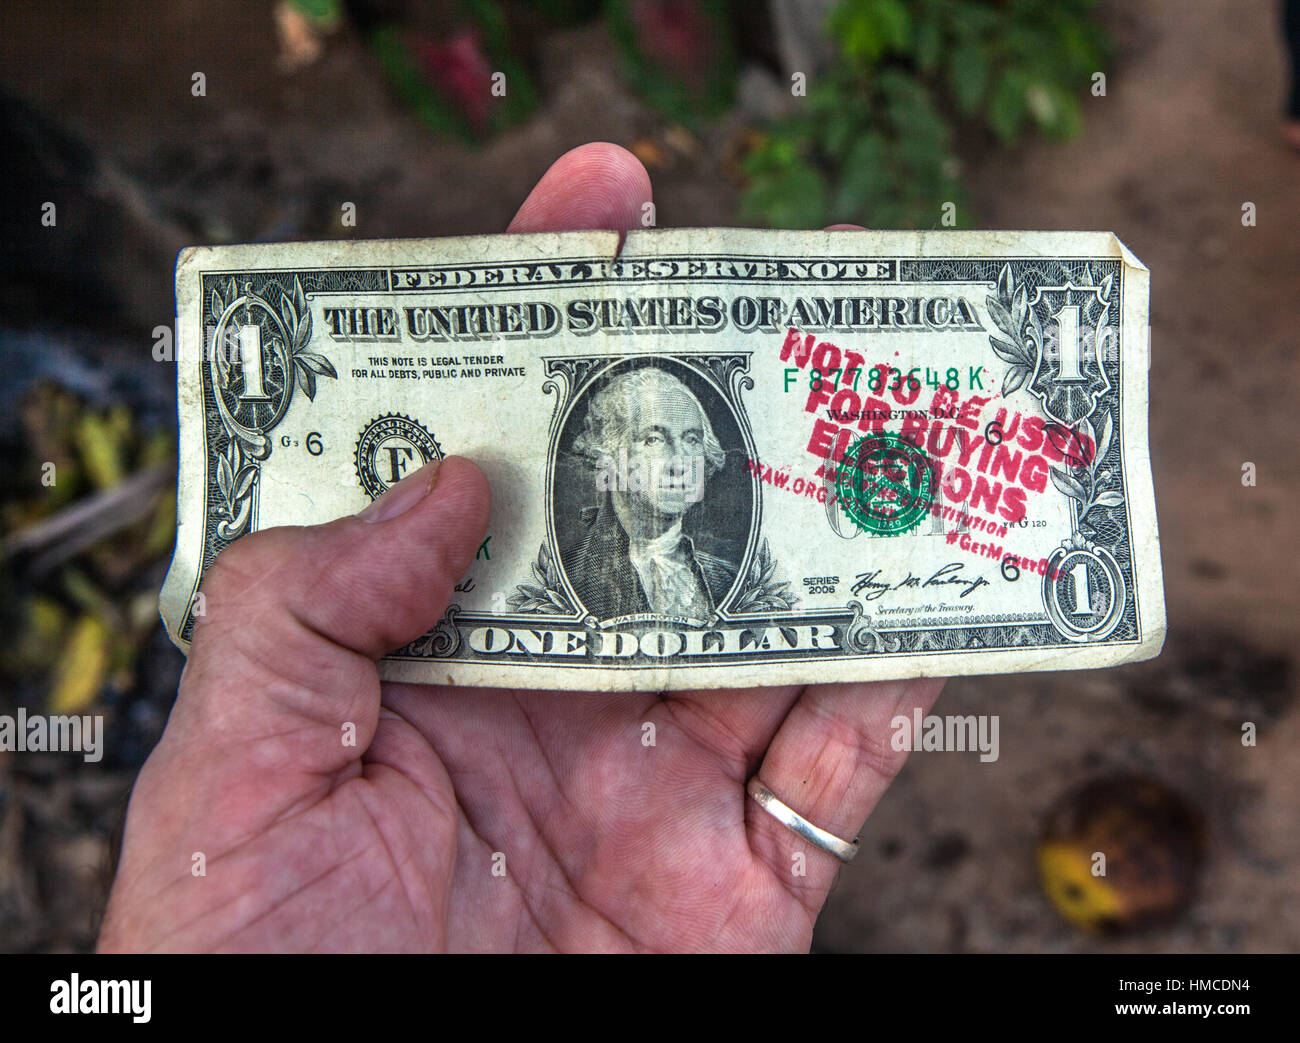 A dollar stamped from the People For The American Way anti-Trump organization. - Stock Image